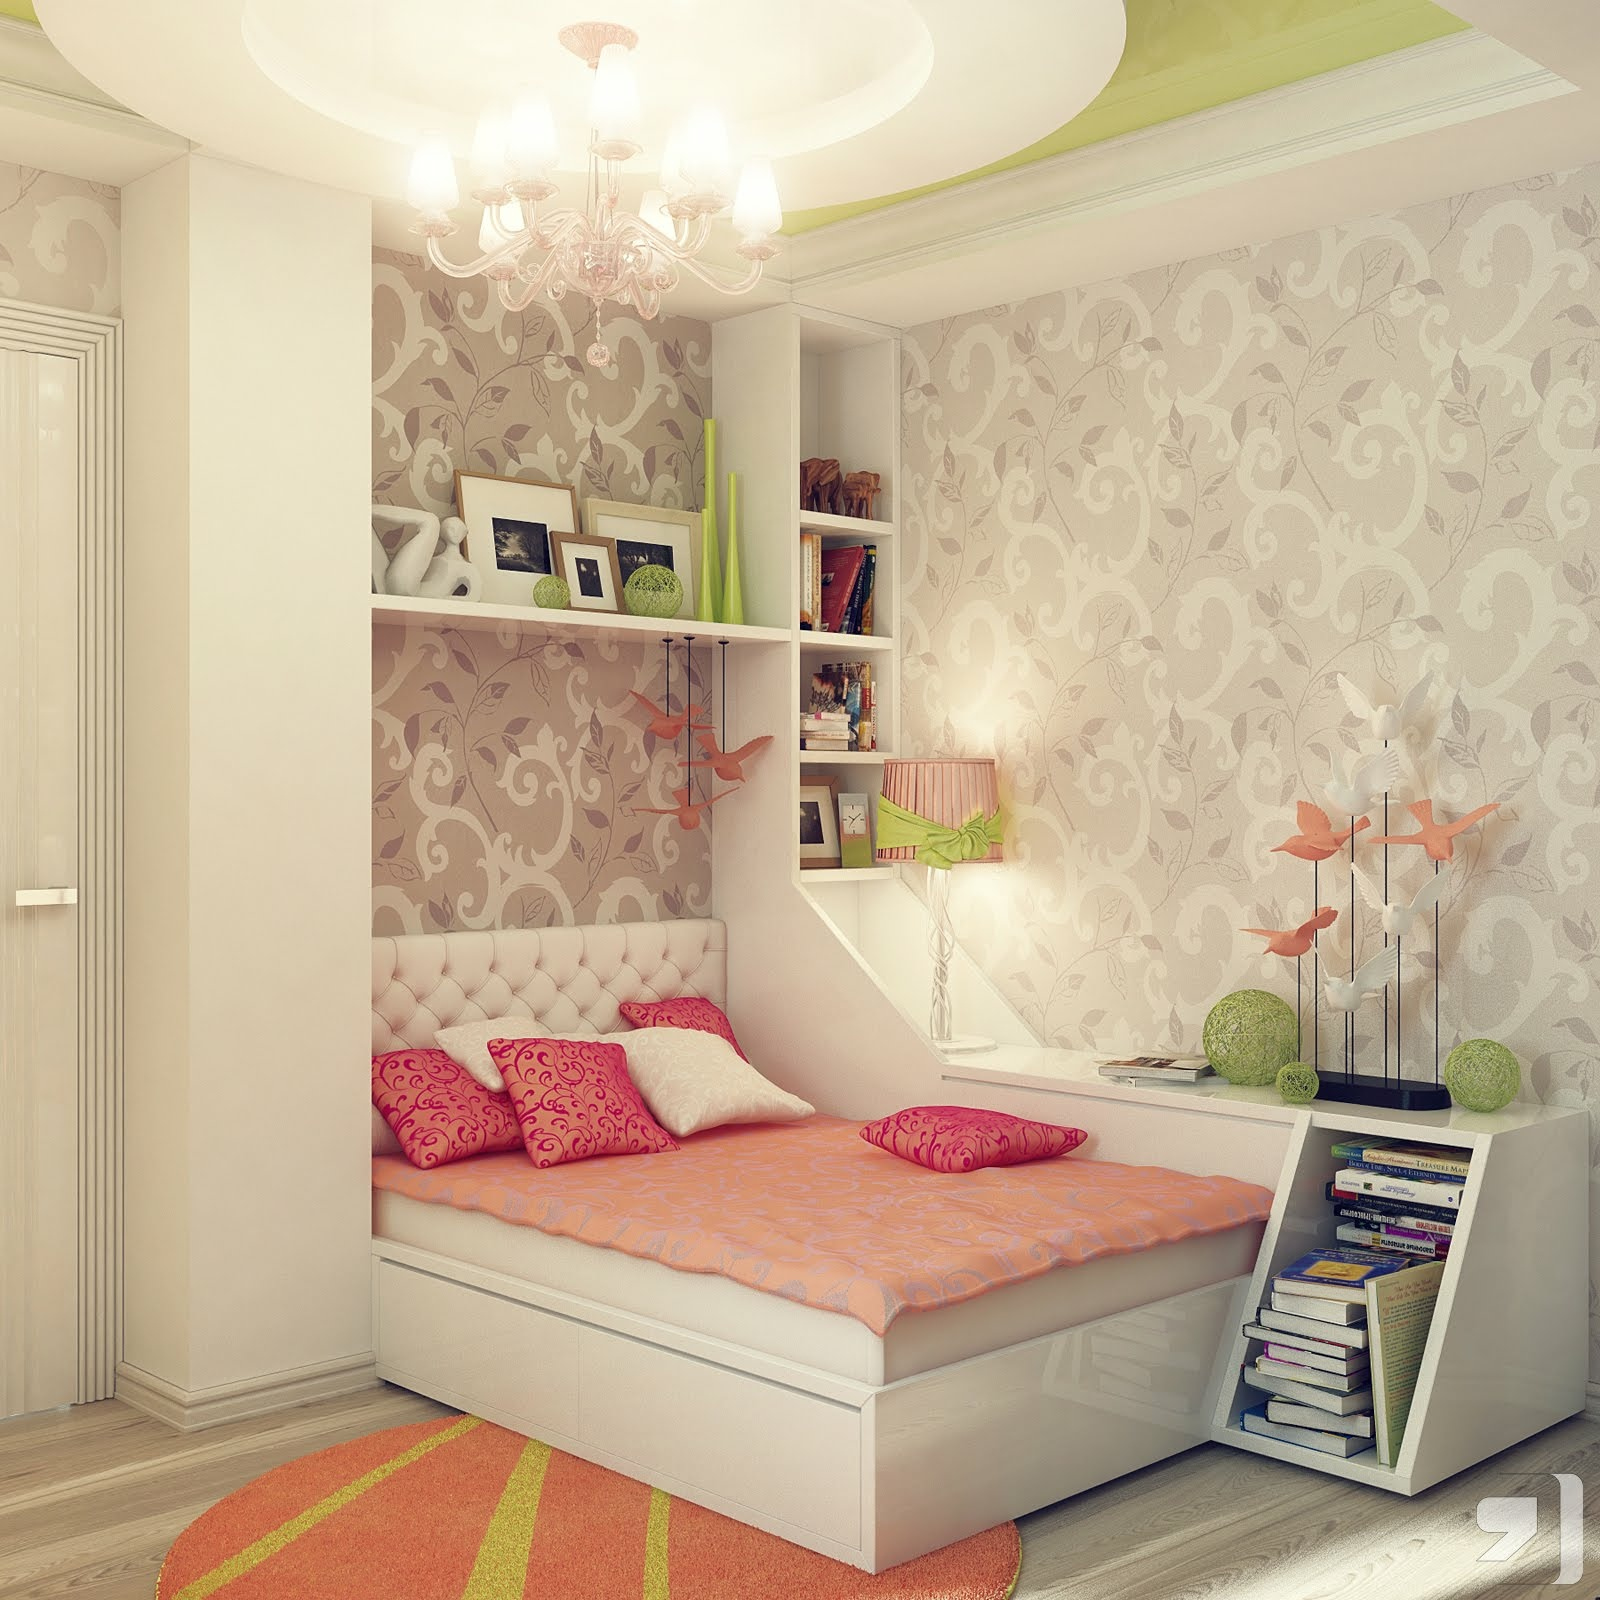 superb design ideas green gray girls bedroom decor girls bedroom design ideas pampered in luxury Bedroom Ideas For Girls